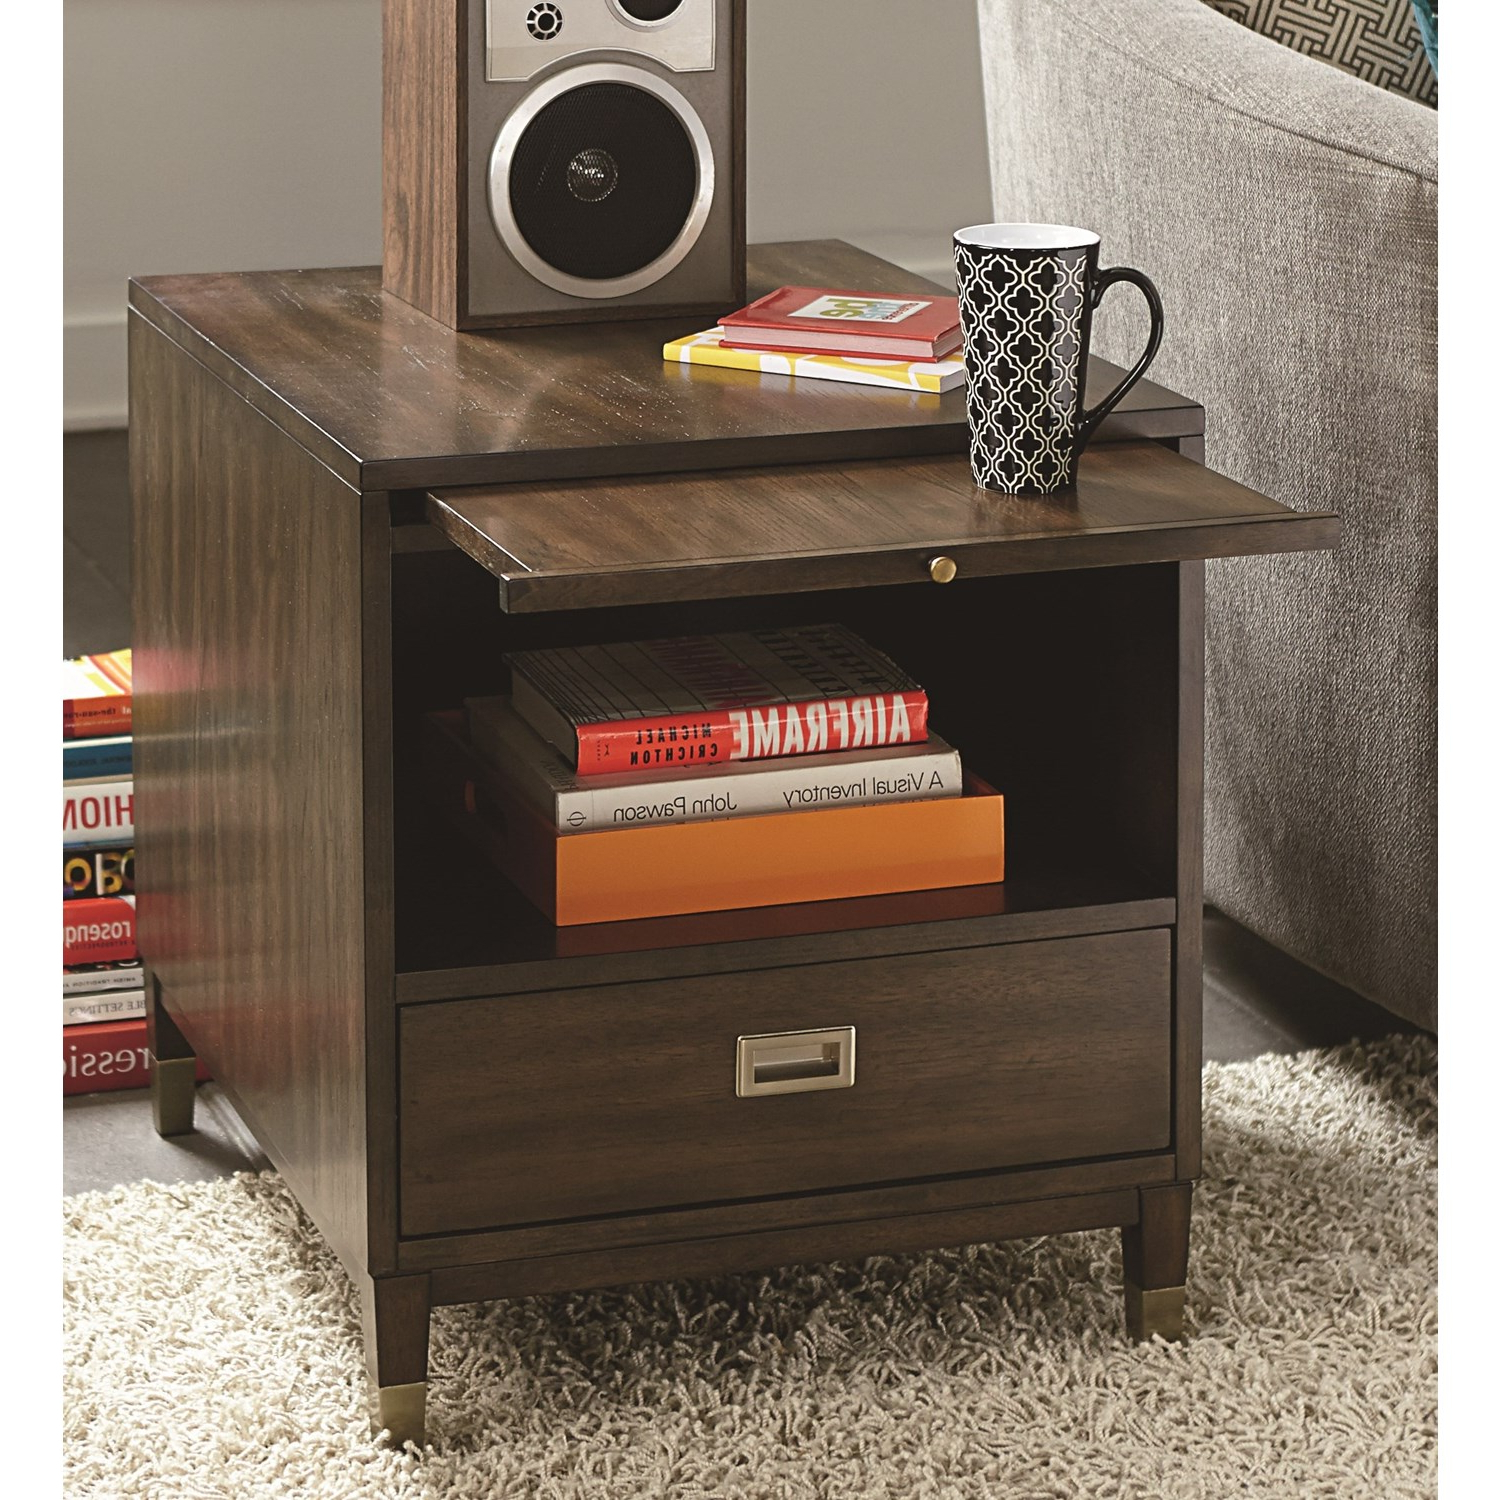 Hammary Furniture Stratus Umber Brown Pecan Rectangular Drawer End Throughout 2018 Stratus Cocktail Tables (View 15 of 20)